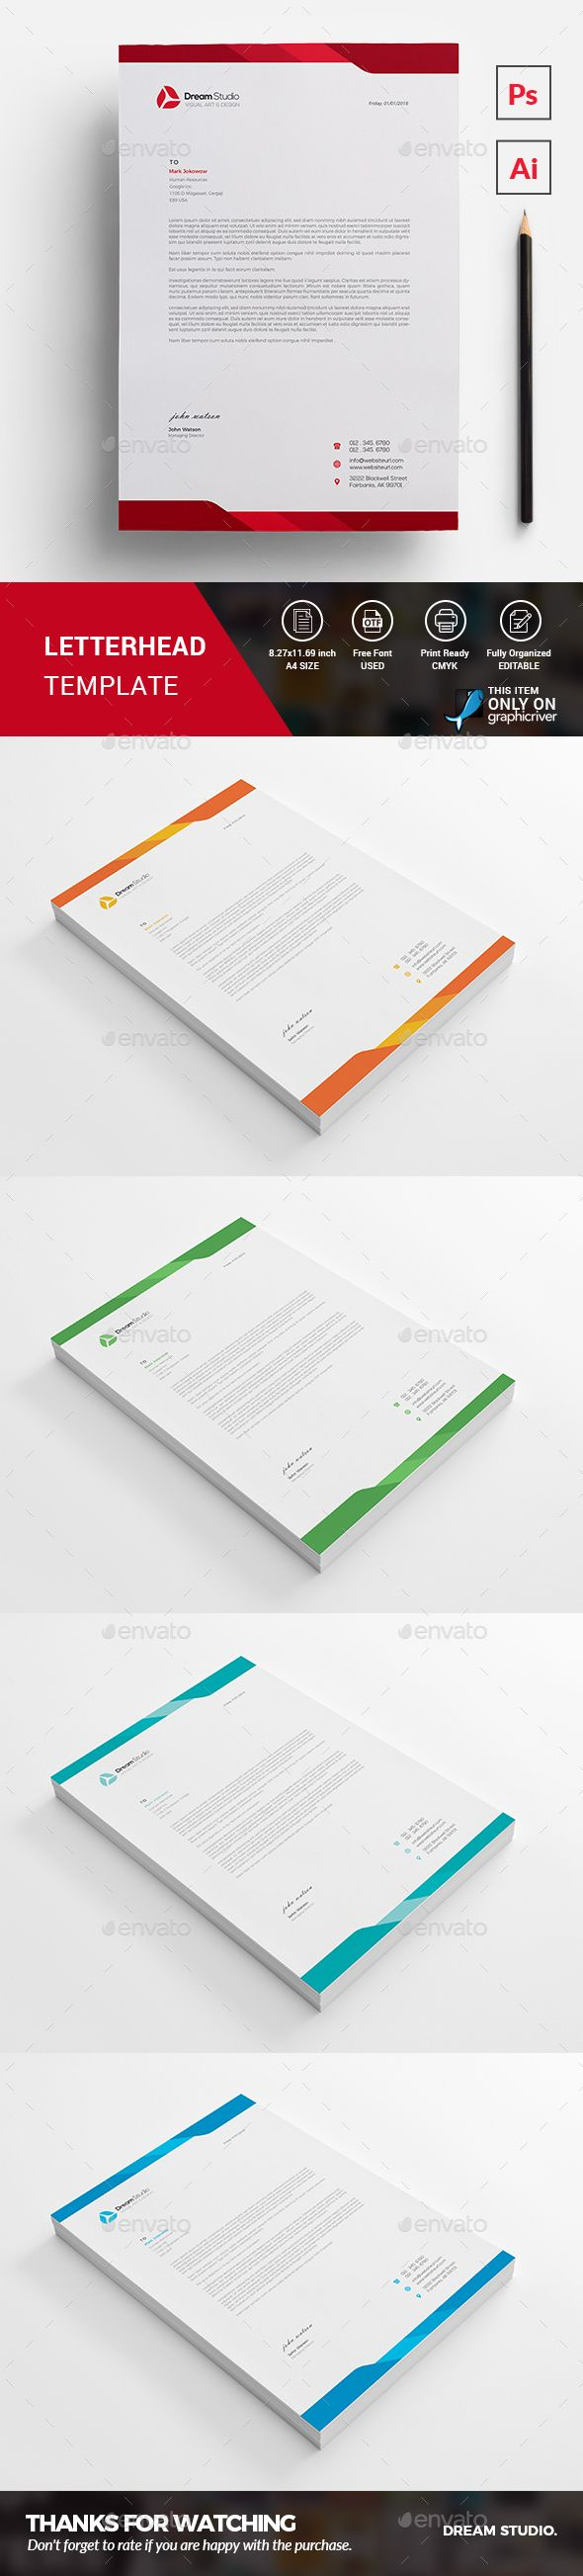 #Letterhead Template - #Stationery Print Templates Download here: https://graphicriver.net/item/letterhead-template/20251986?ref=alena994